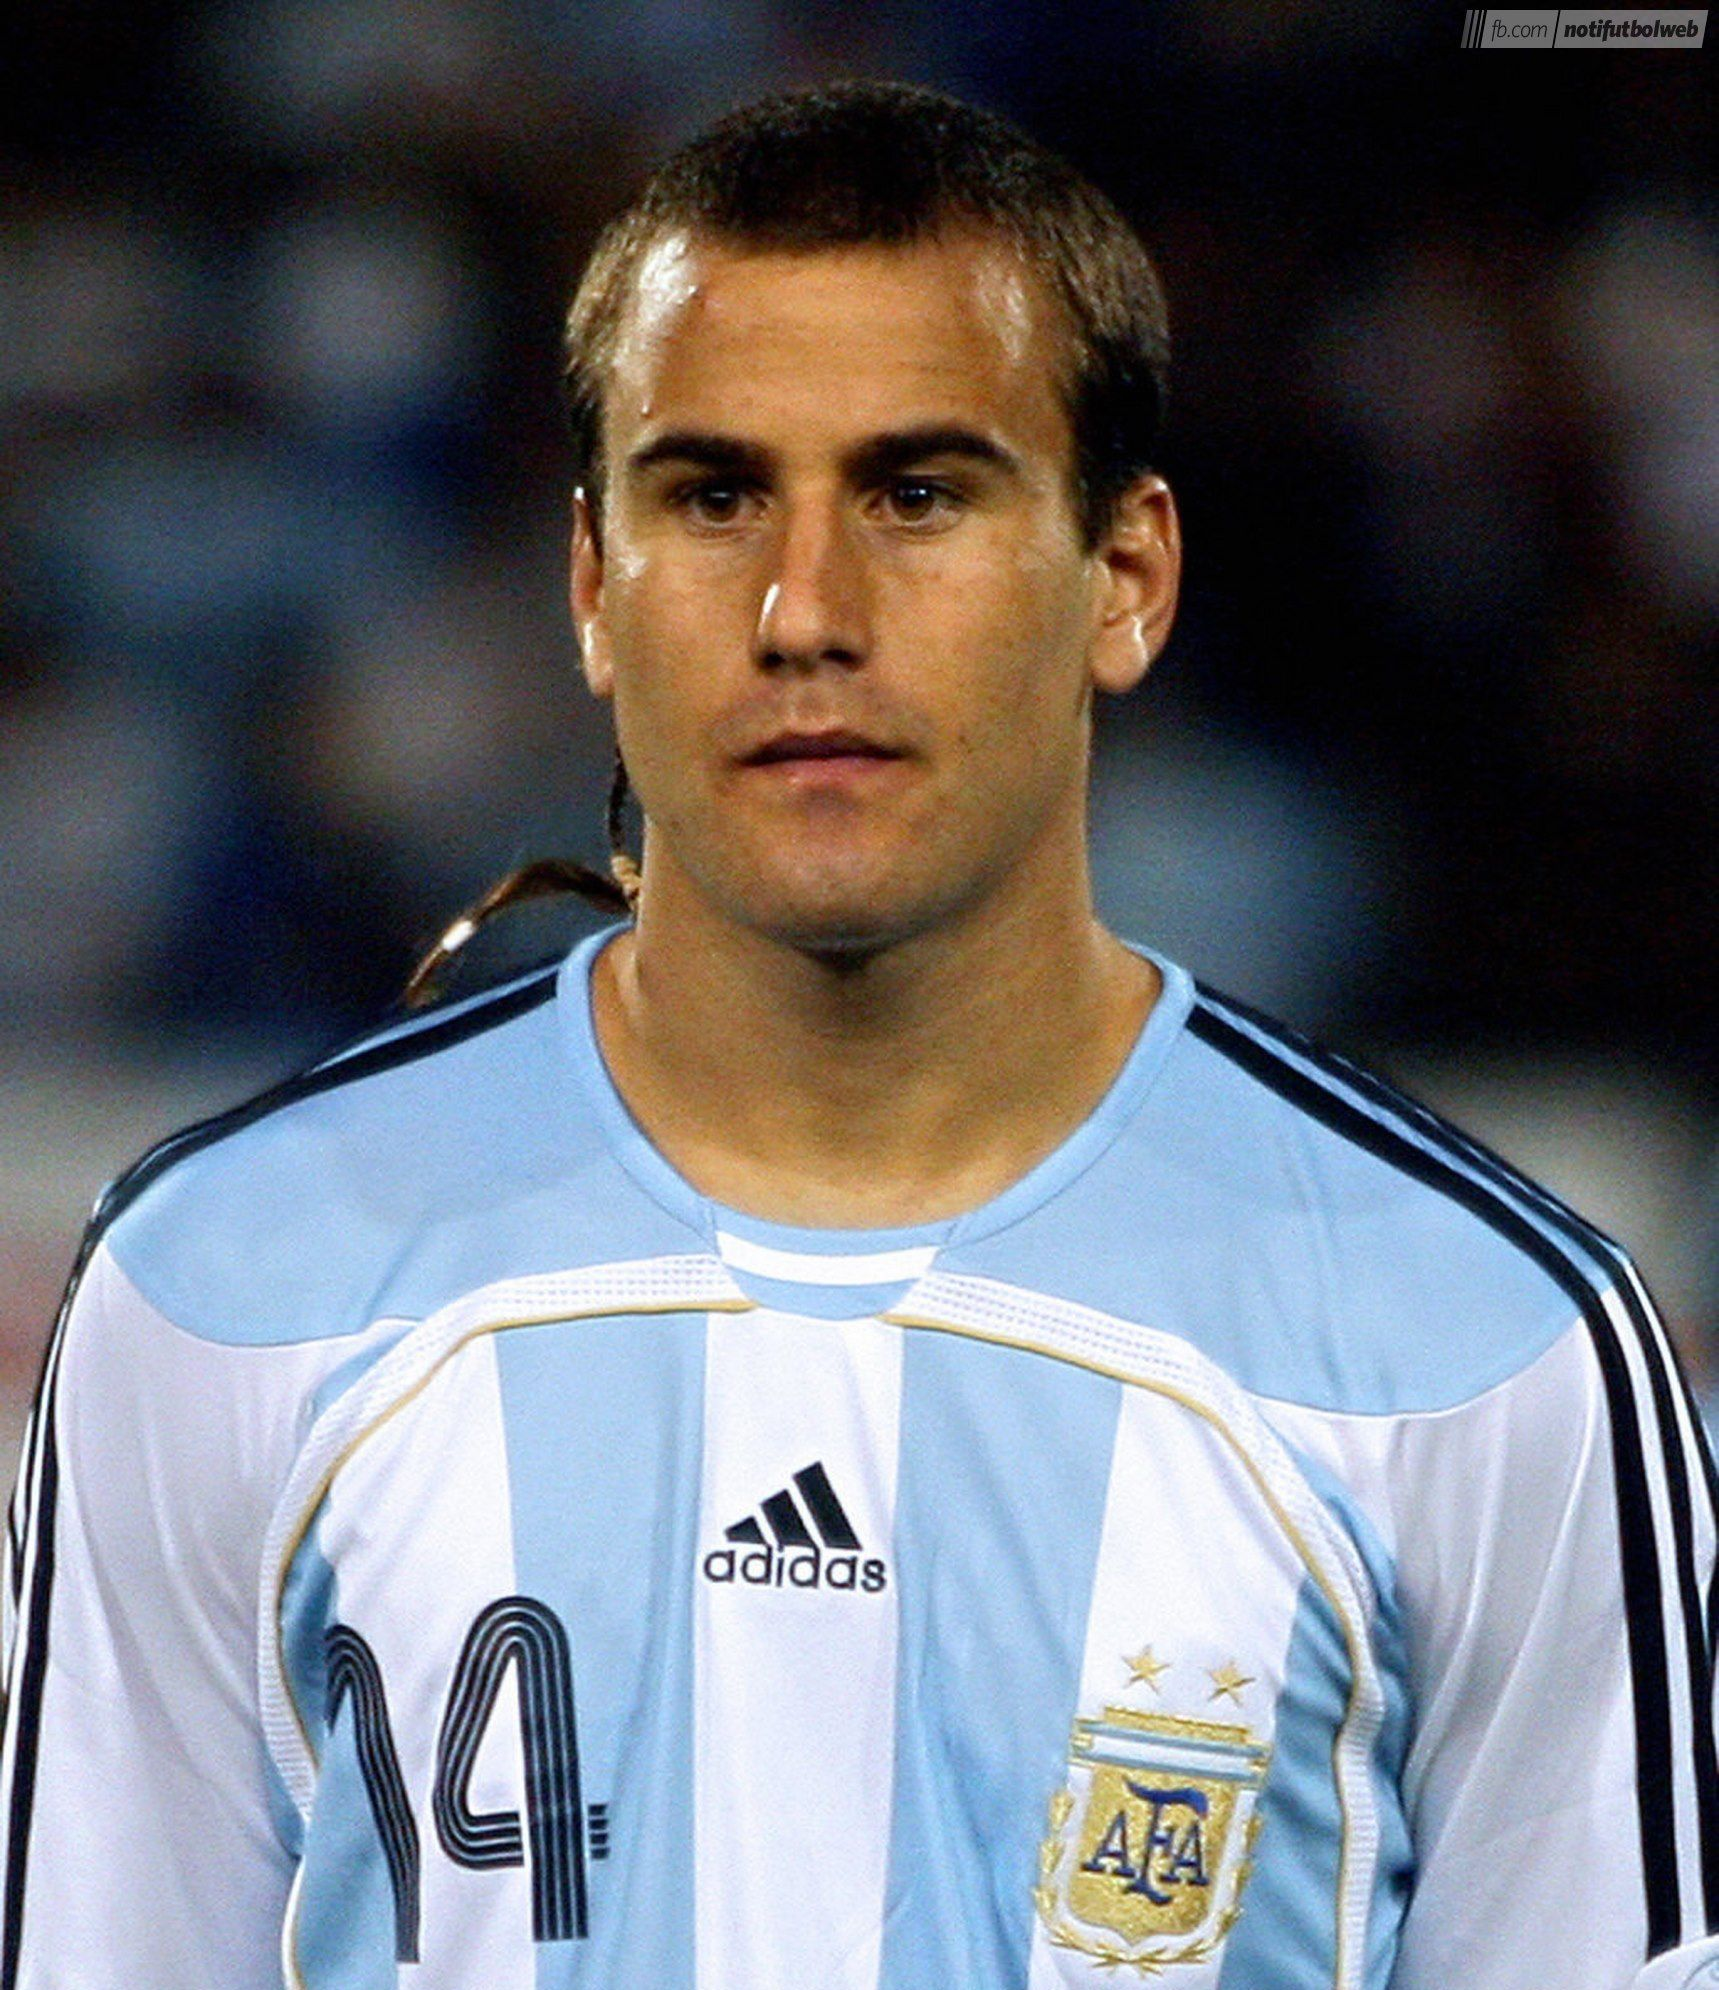 Rodrigo Palacio Football Wallpapers, Backgrounds and Pictures.